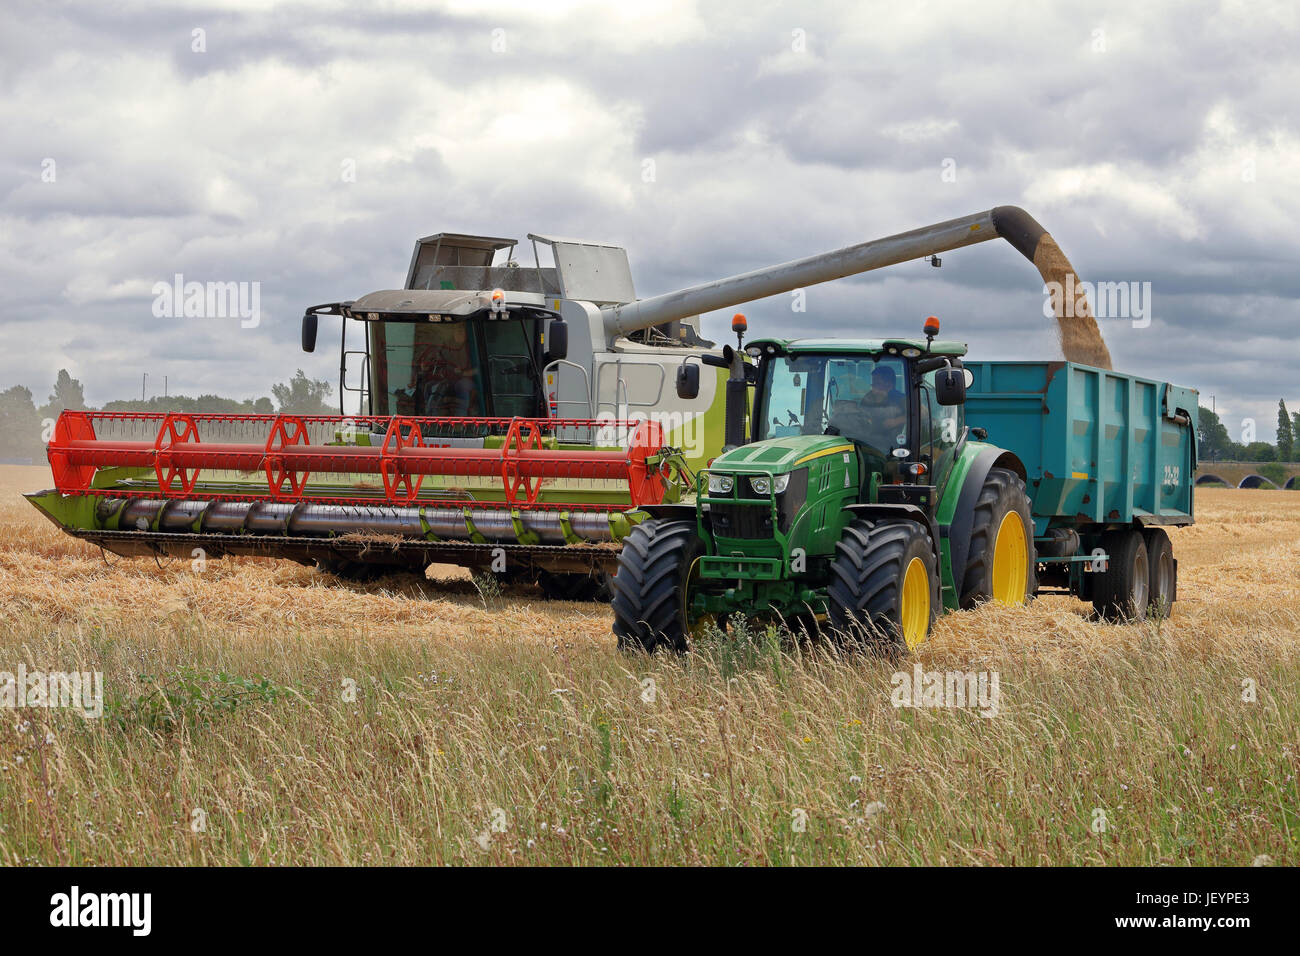 Combine Harvester cutting Wheat in a field in rural england, with Tractor and Trailer being filled with grain - Stock Image